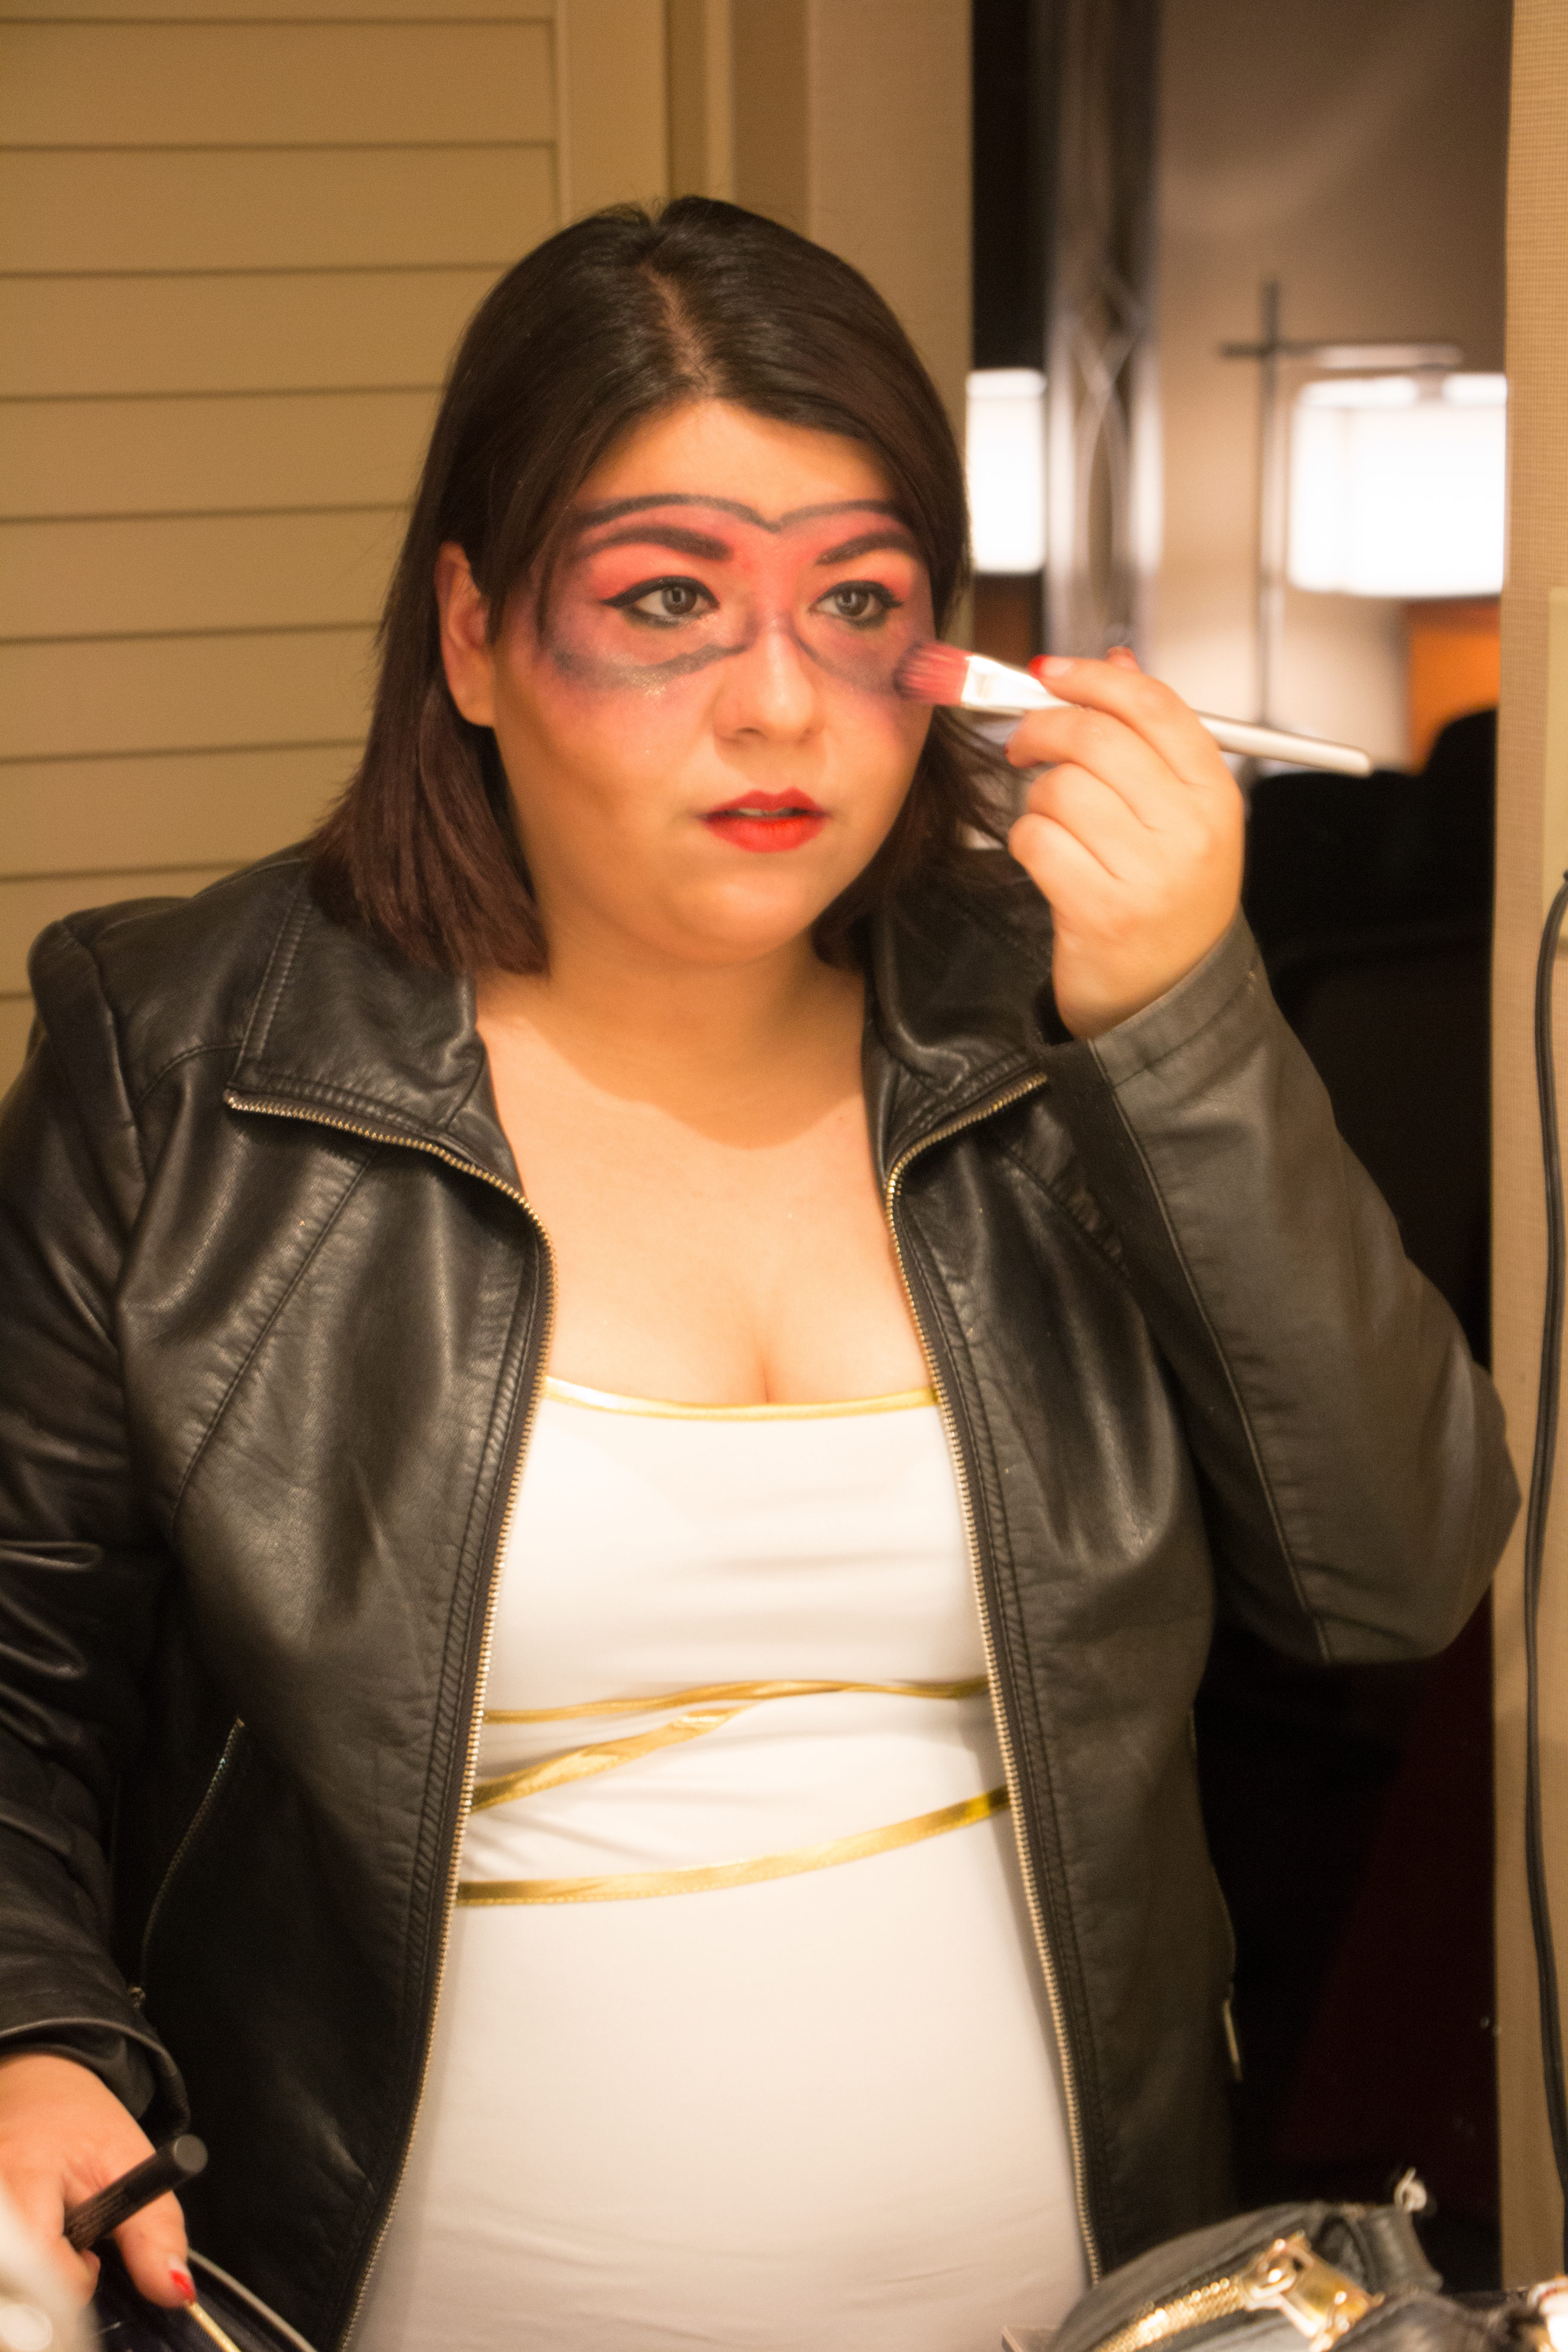 Iliana Arizpe gets her Cupid costume ready by applying extra makeup.